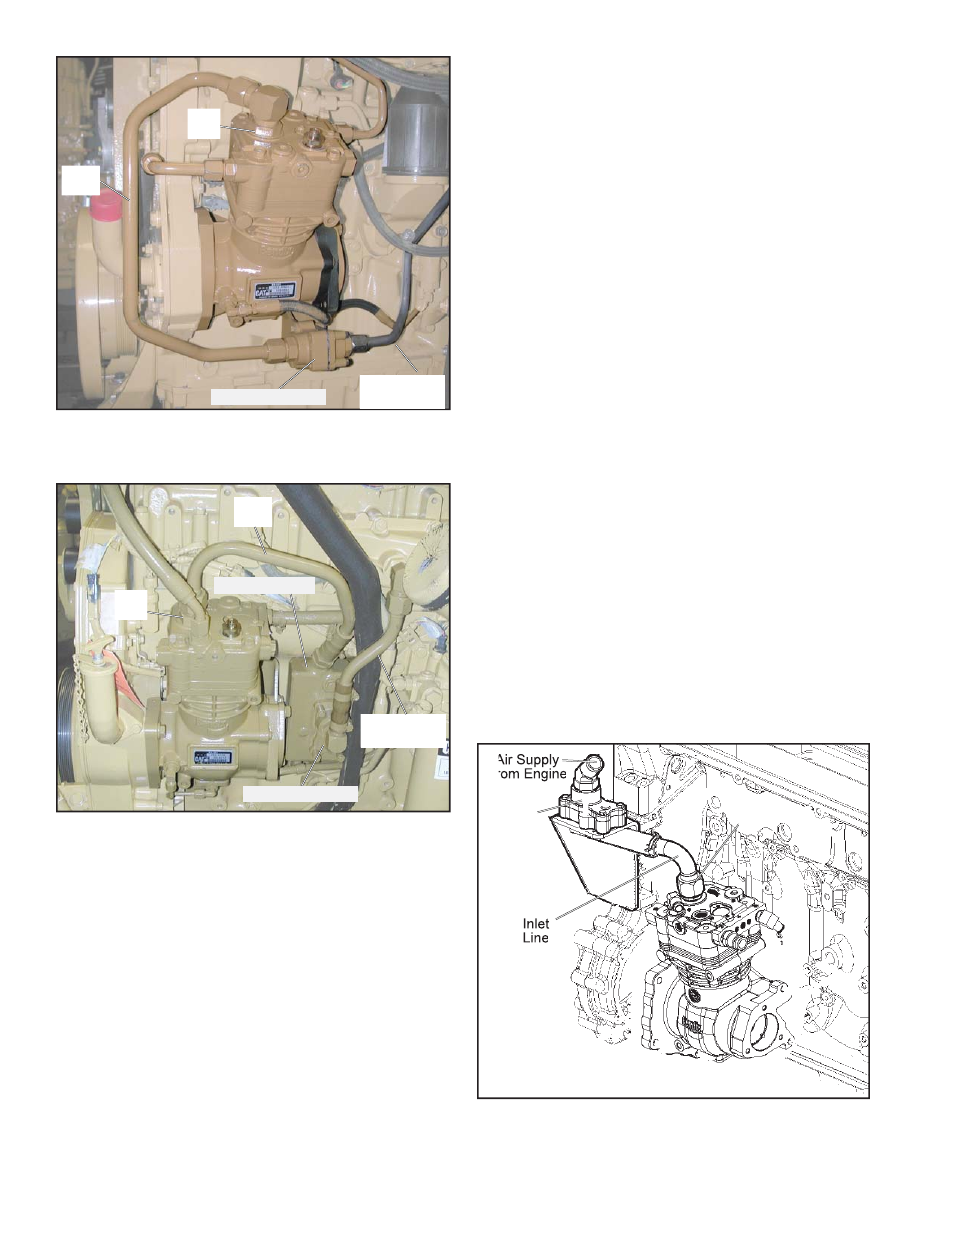 Air Induction Bendix Commercial Vehicle Systems Ba 921 Cat Turbocharger Diagram Of Engine Compressor Std Closed Room User Manual Page 6 40